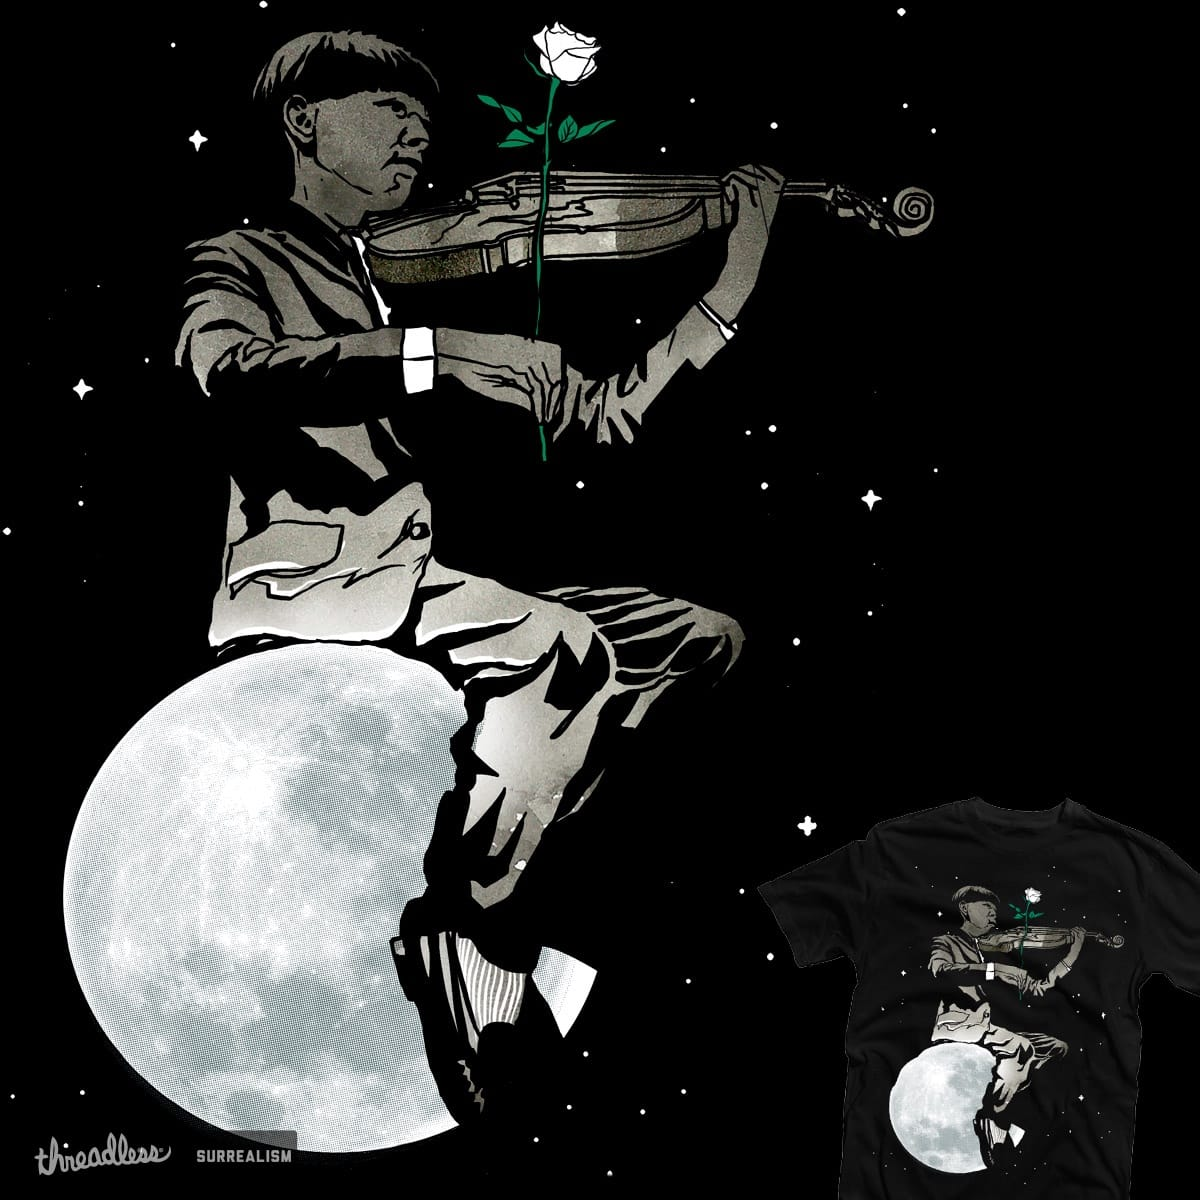 a song about the moon by rodisleyd on Threadless